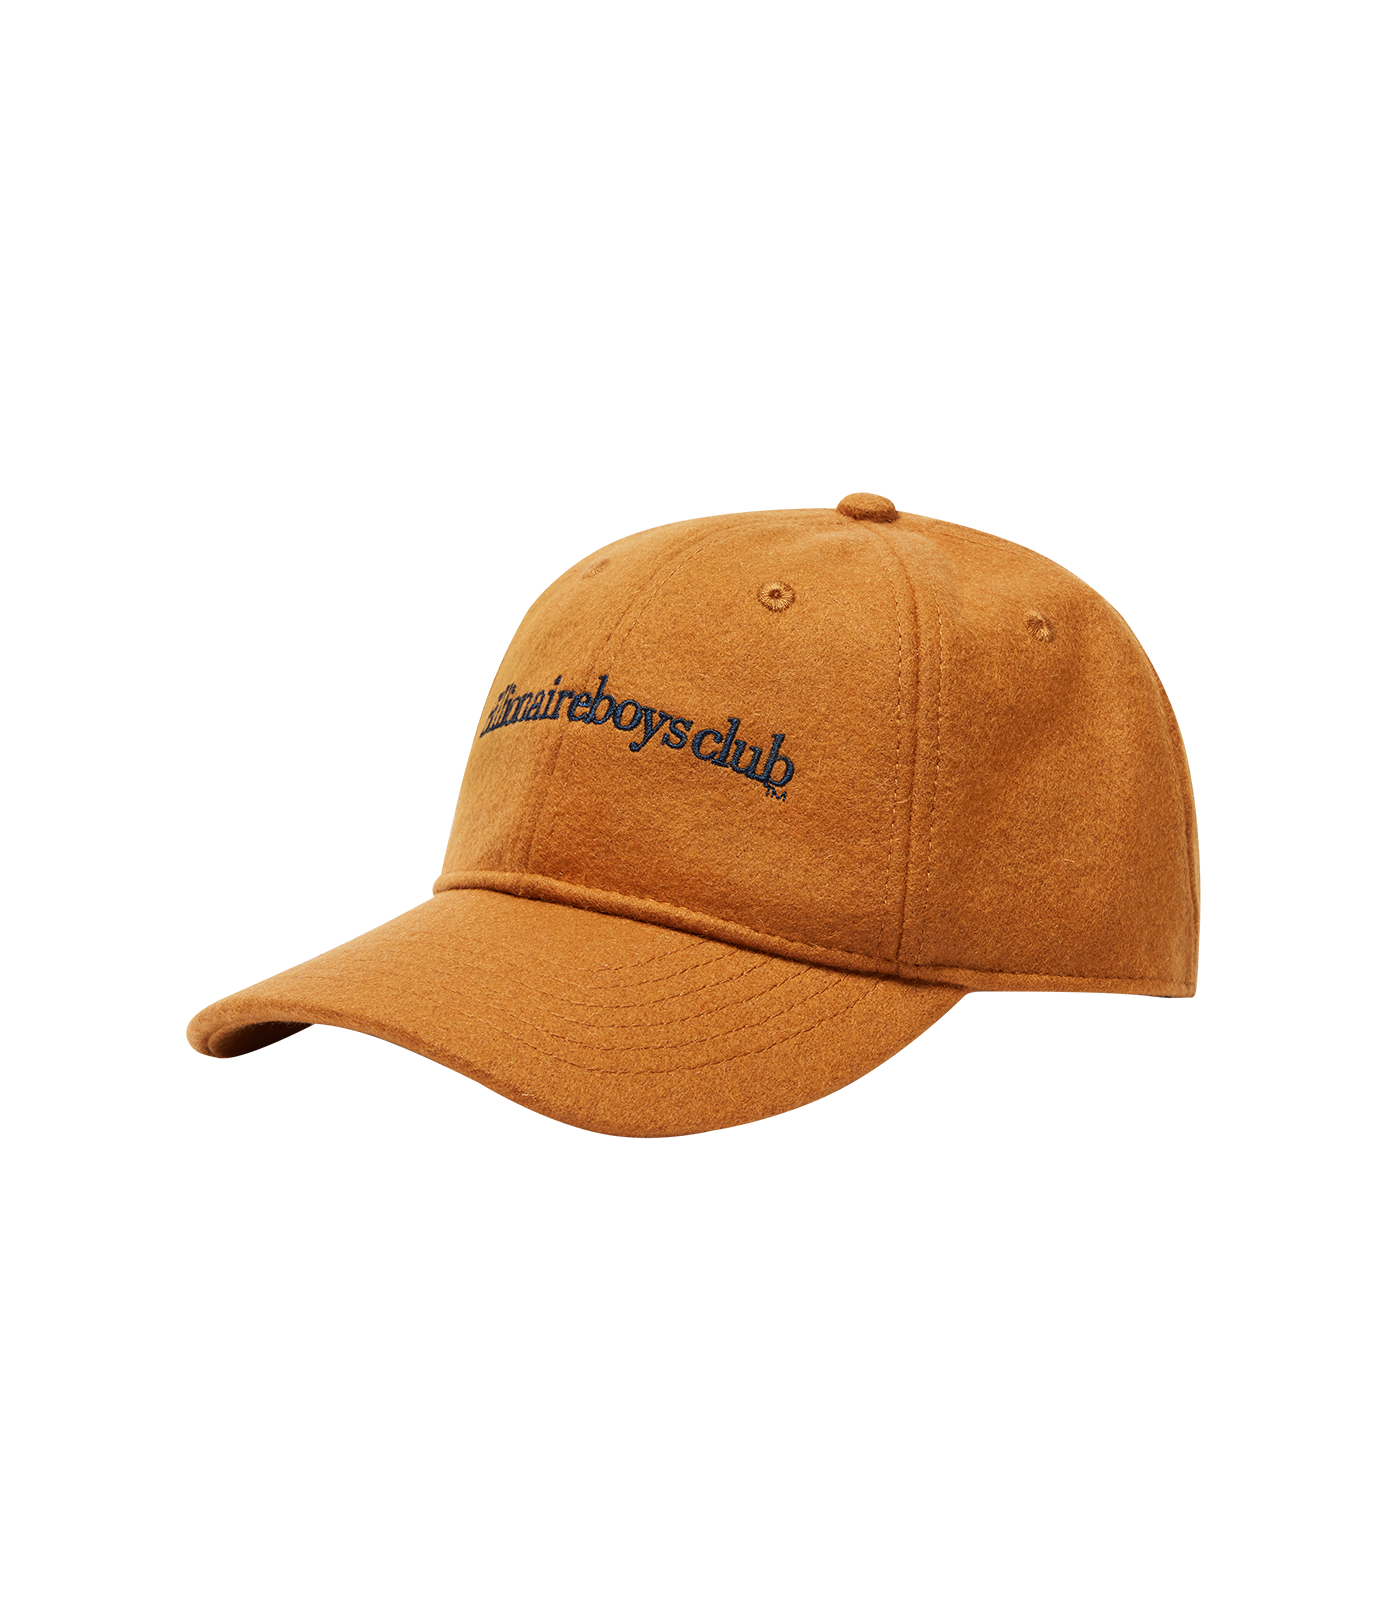 EMBROIDERED WOOL CURVED VISOR CAP - ORANGE